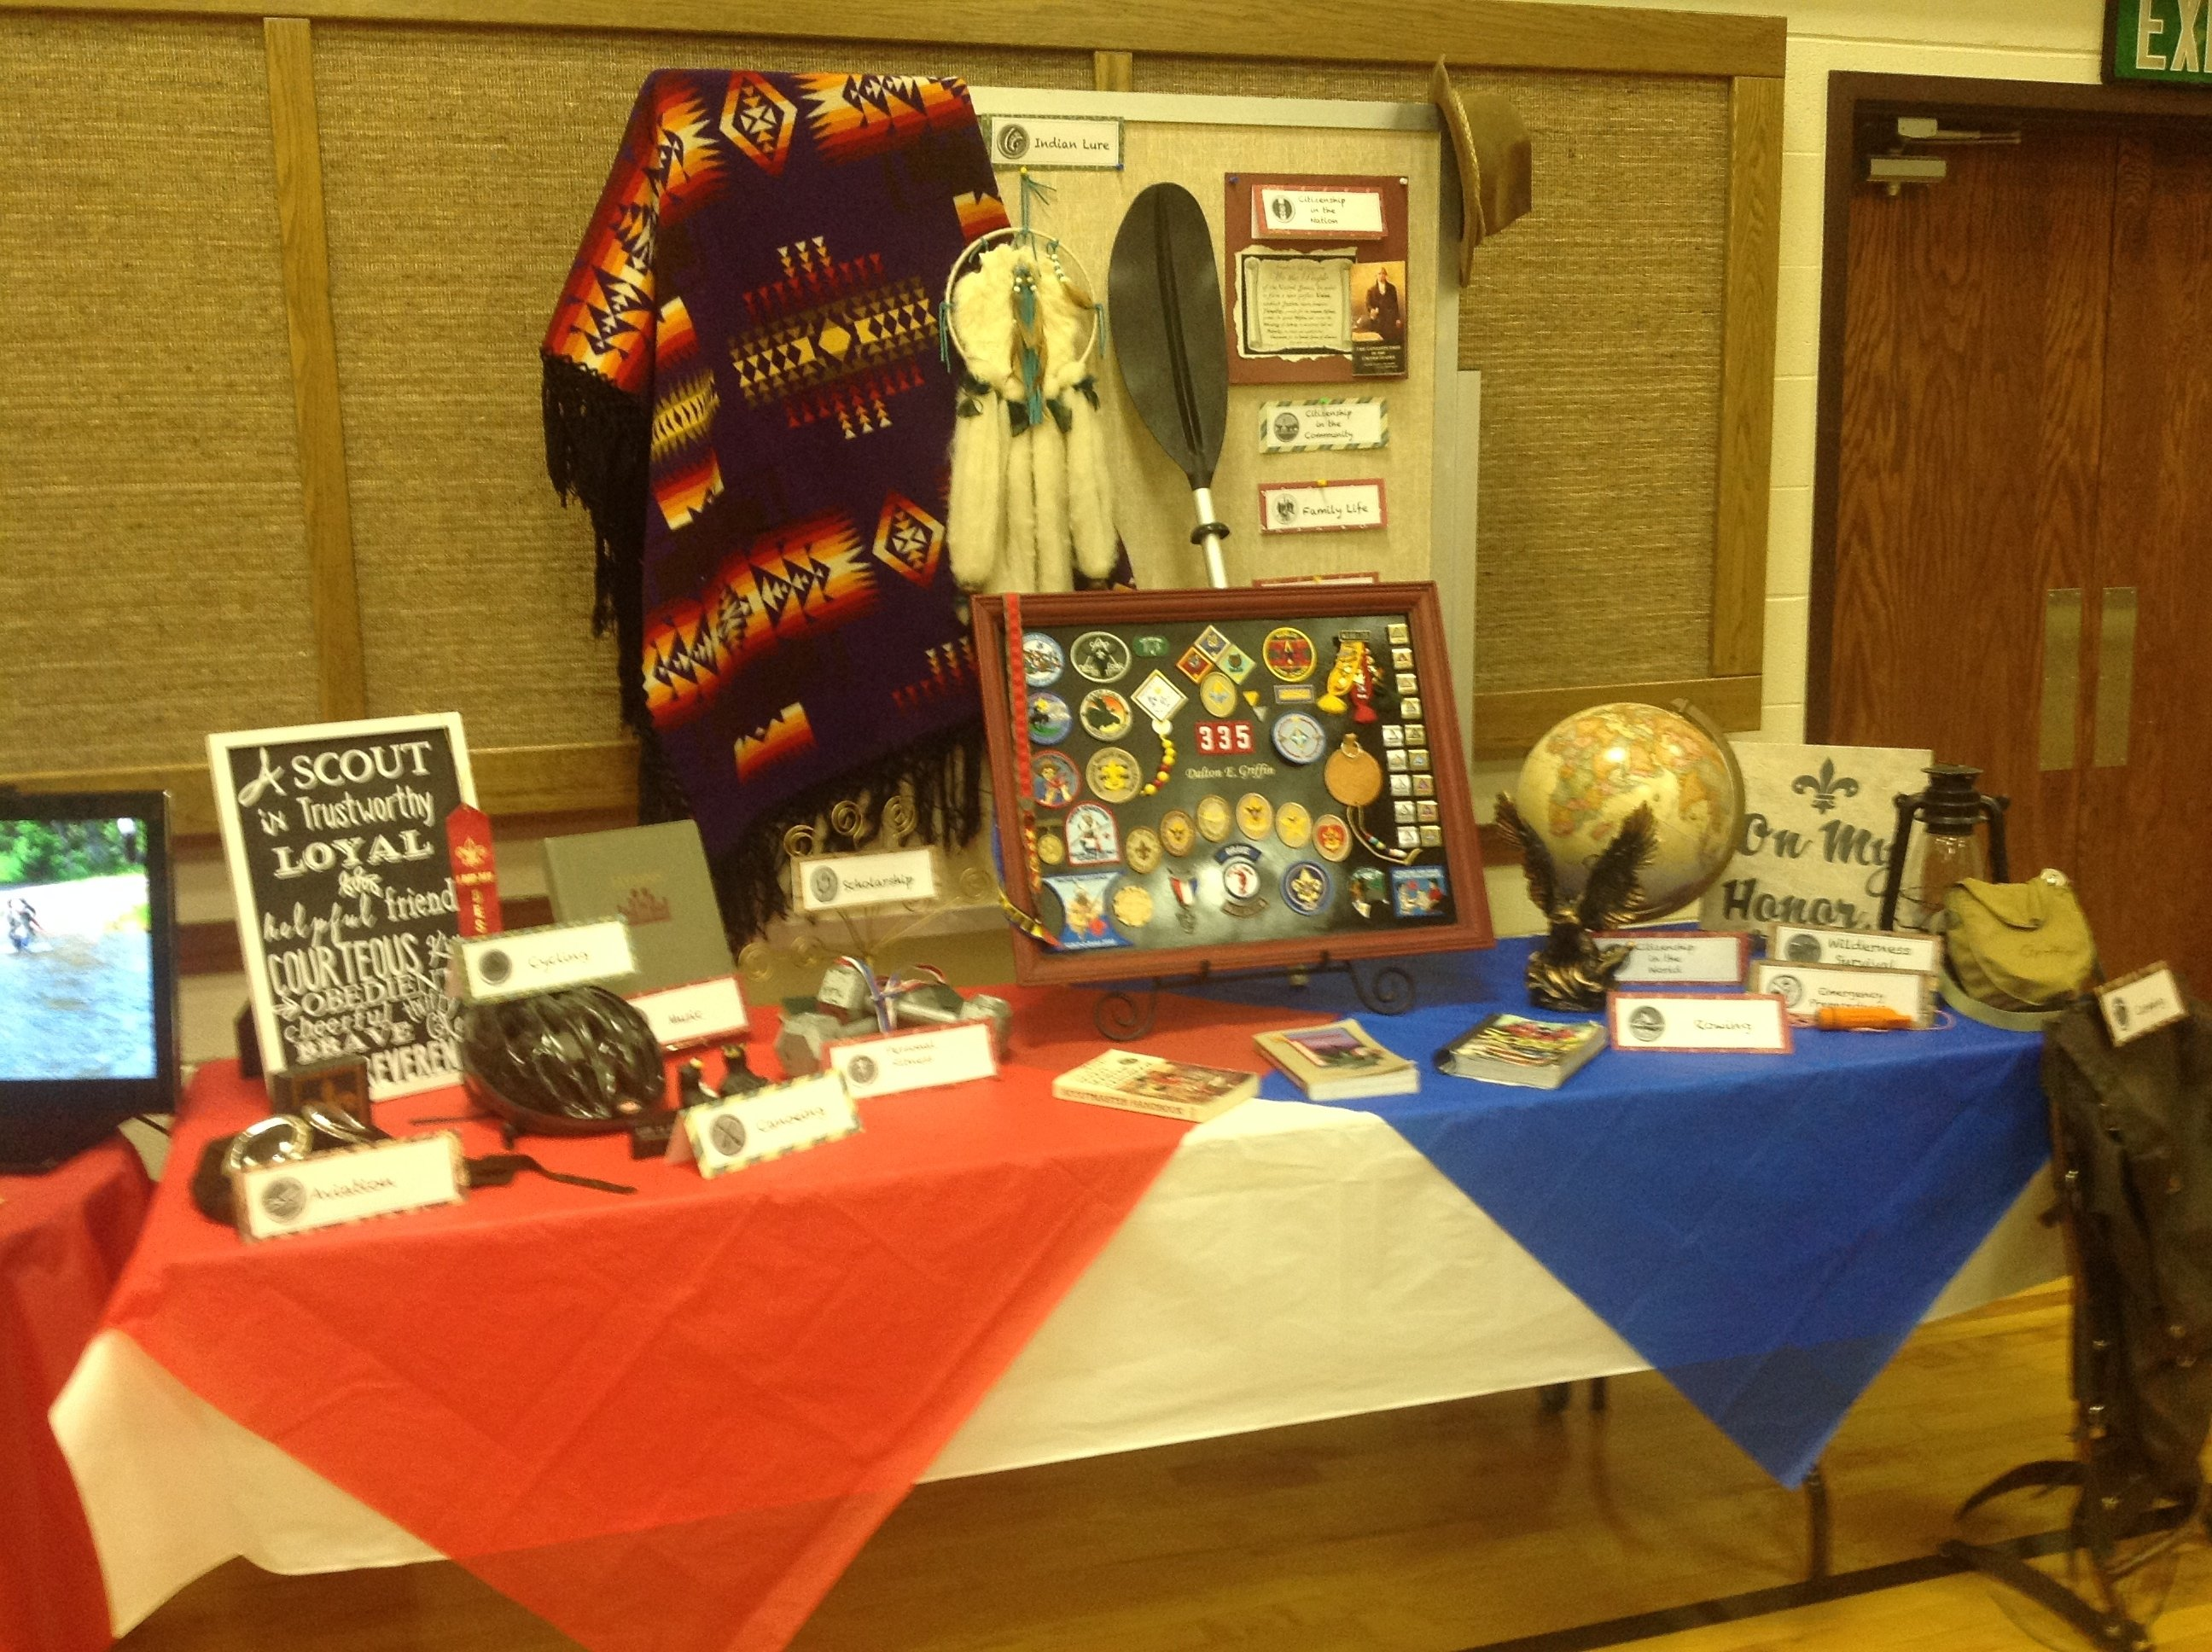 10 Perfect Eagle Court Of Honor Ideas court of honor table displays dime and a prayer 2020